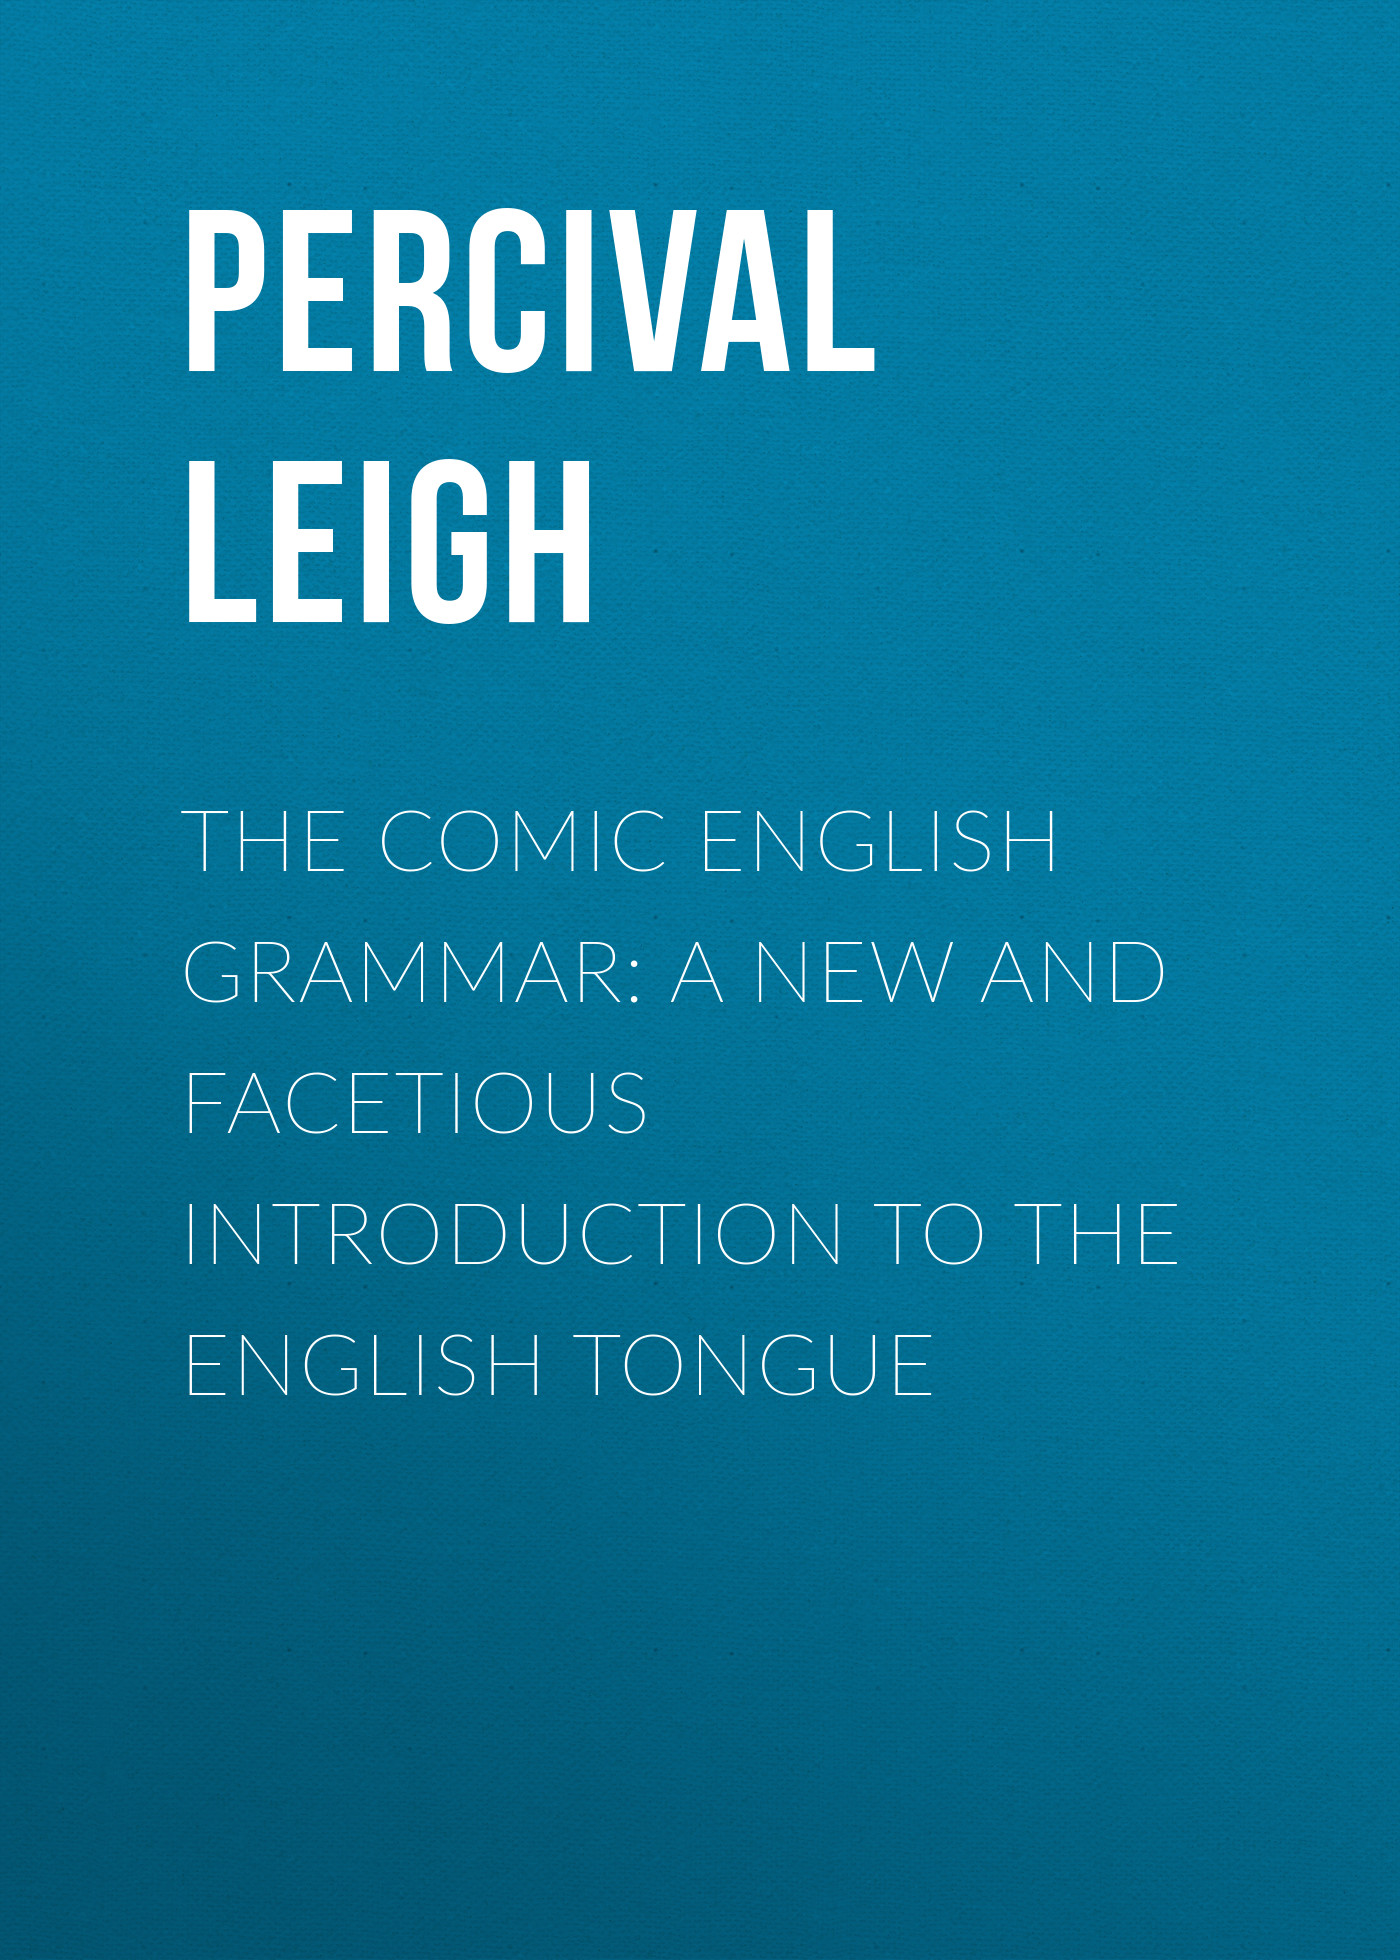 Leigh Percival The Comic English Grammar: A New And Facetious Introduction To The English Tongue peter baker s introduction to old english